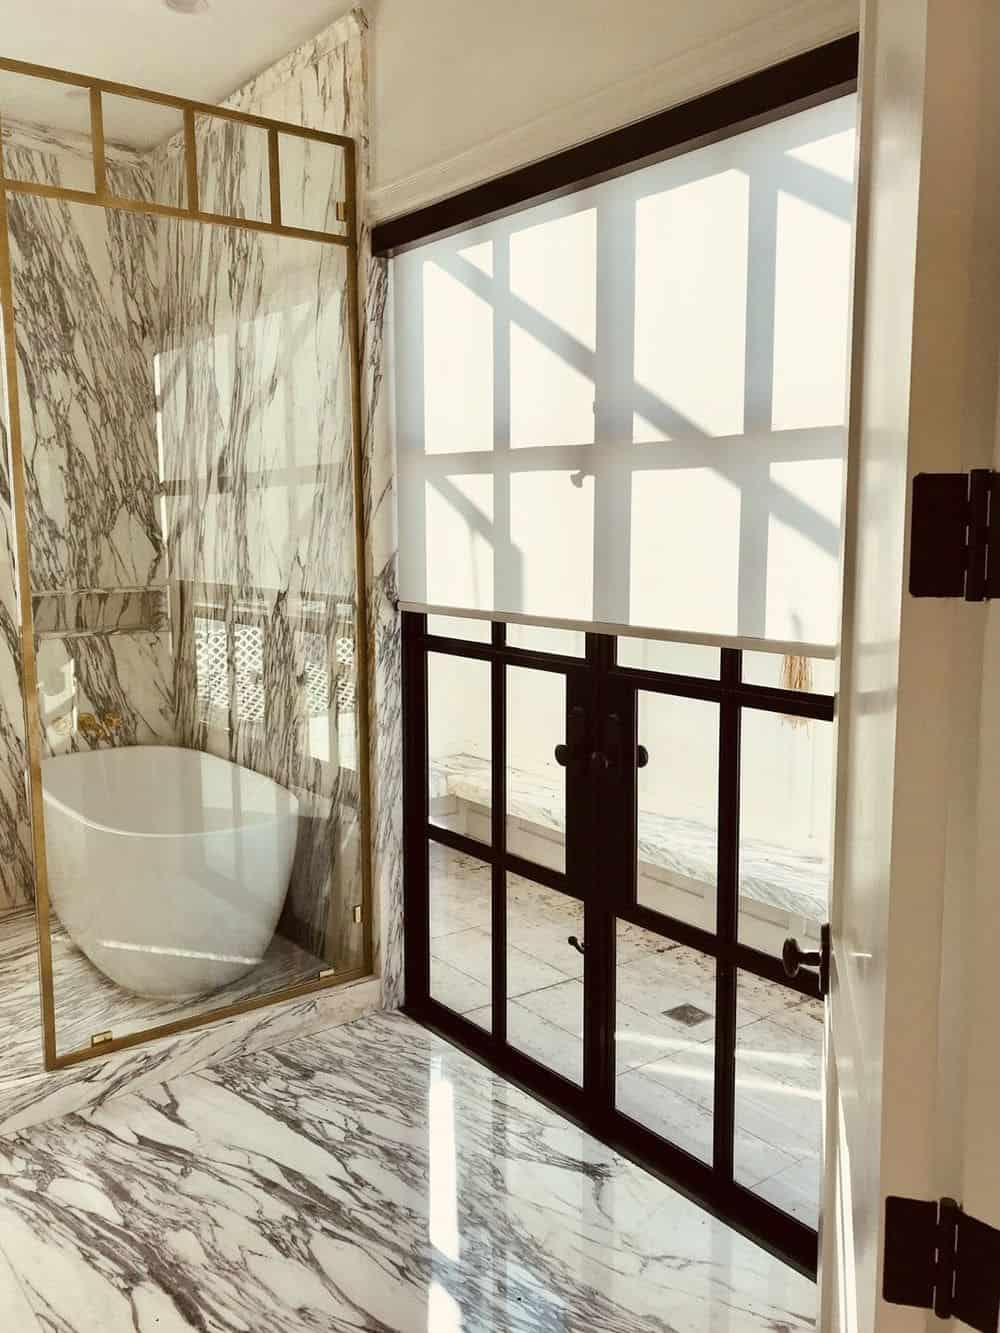 This primary bathroom boasts luxurious marble tiles floors and walls. It offers a freestanding tub as well. The windows of the room feature window shades.